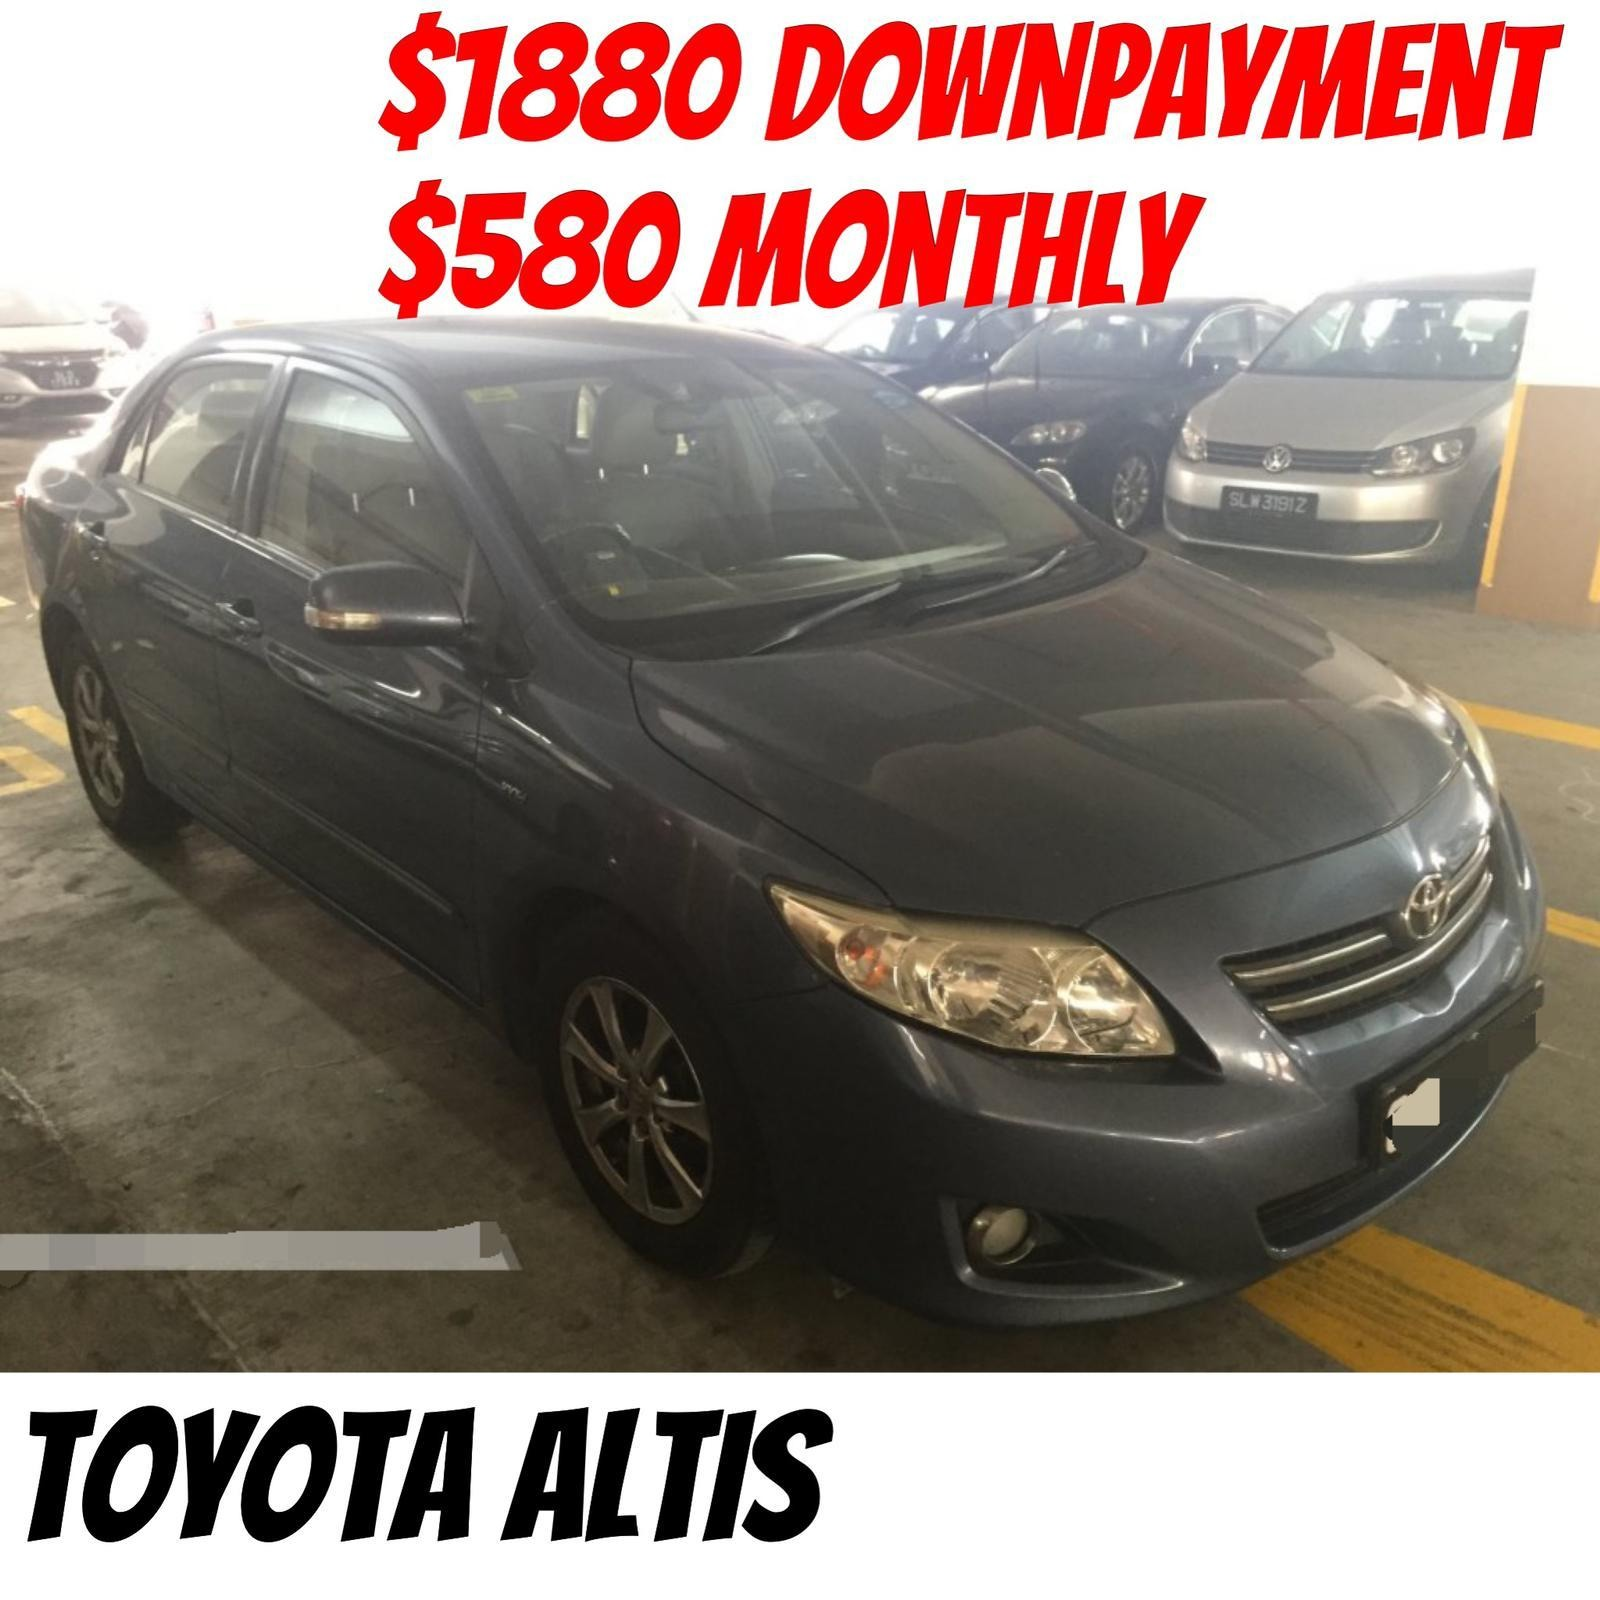 Toyota Altis Only 1880 Downpayment Full Loan Cars Cars For